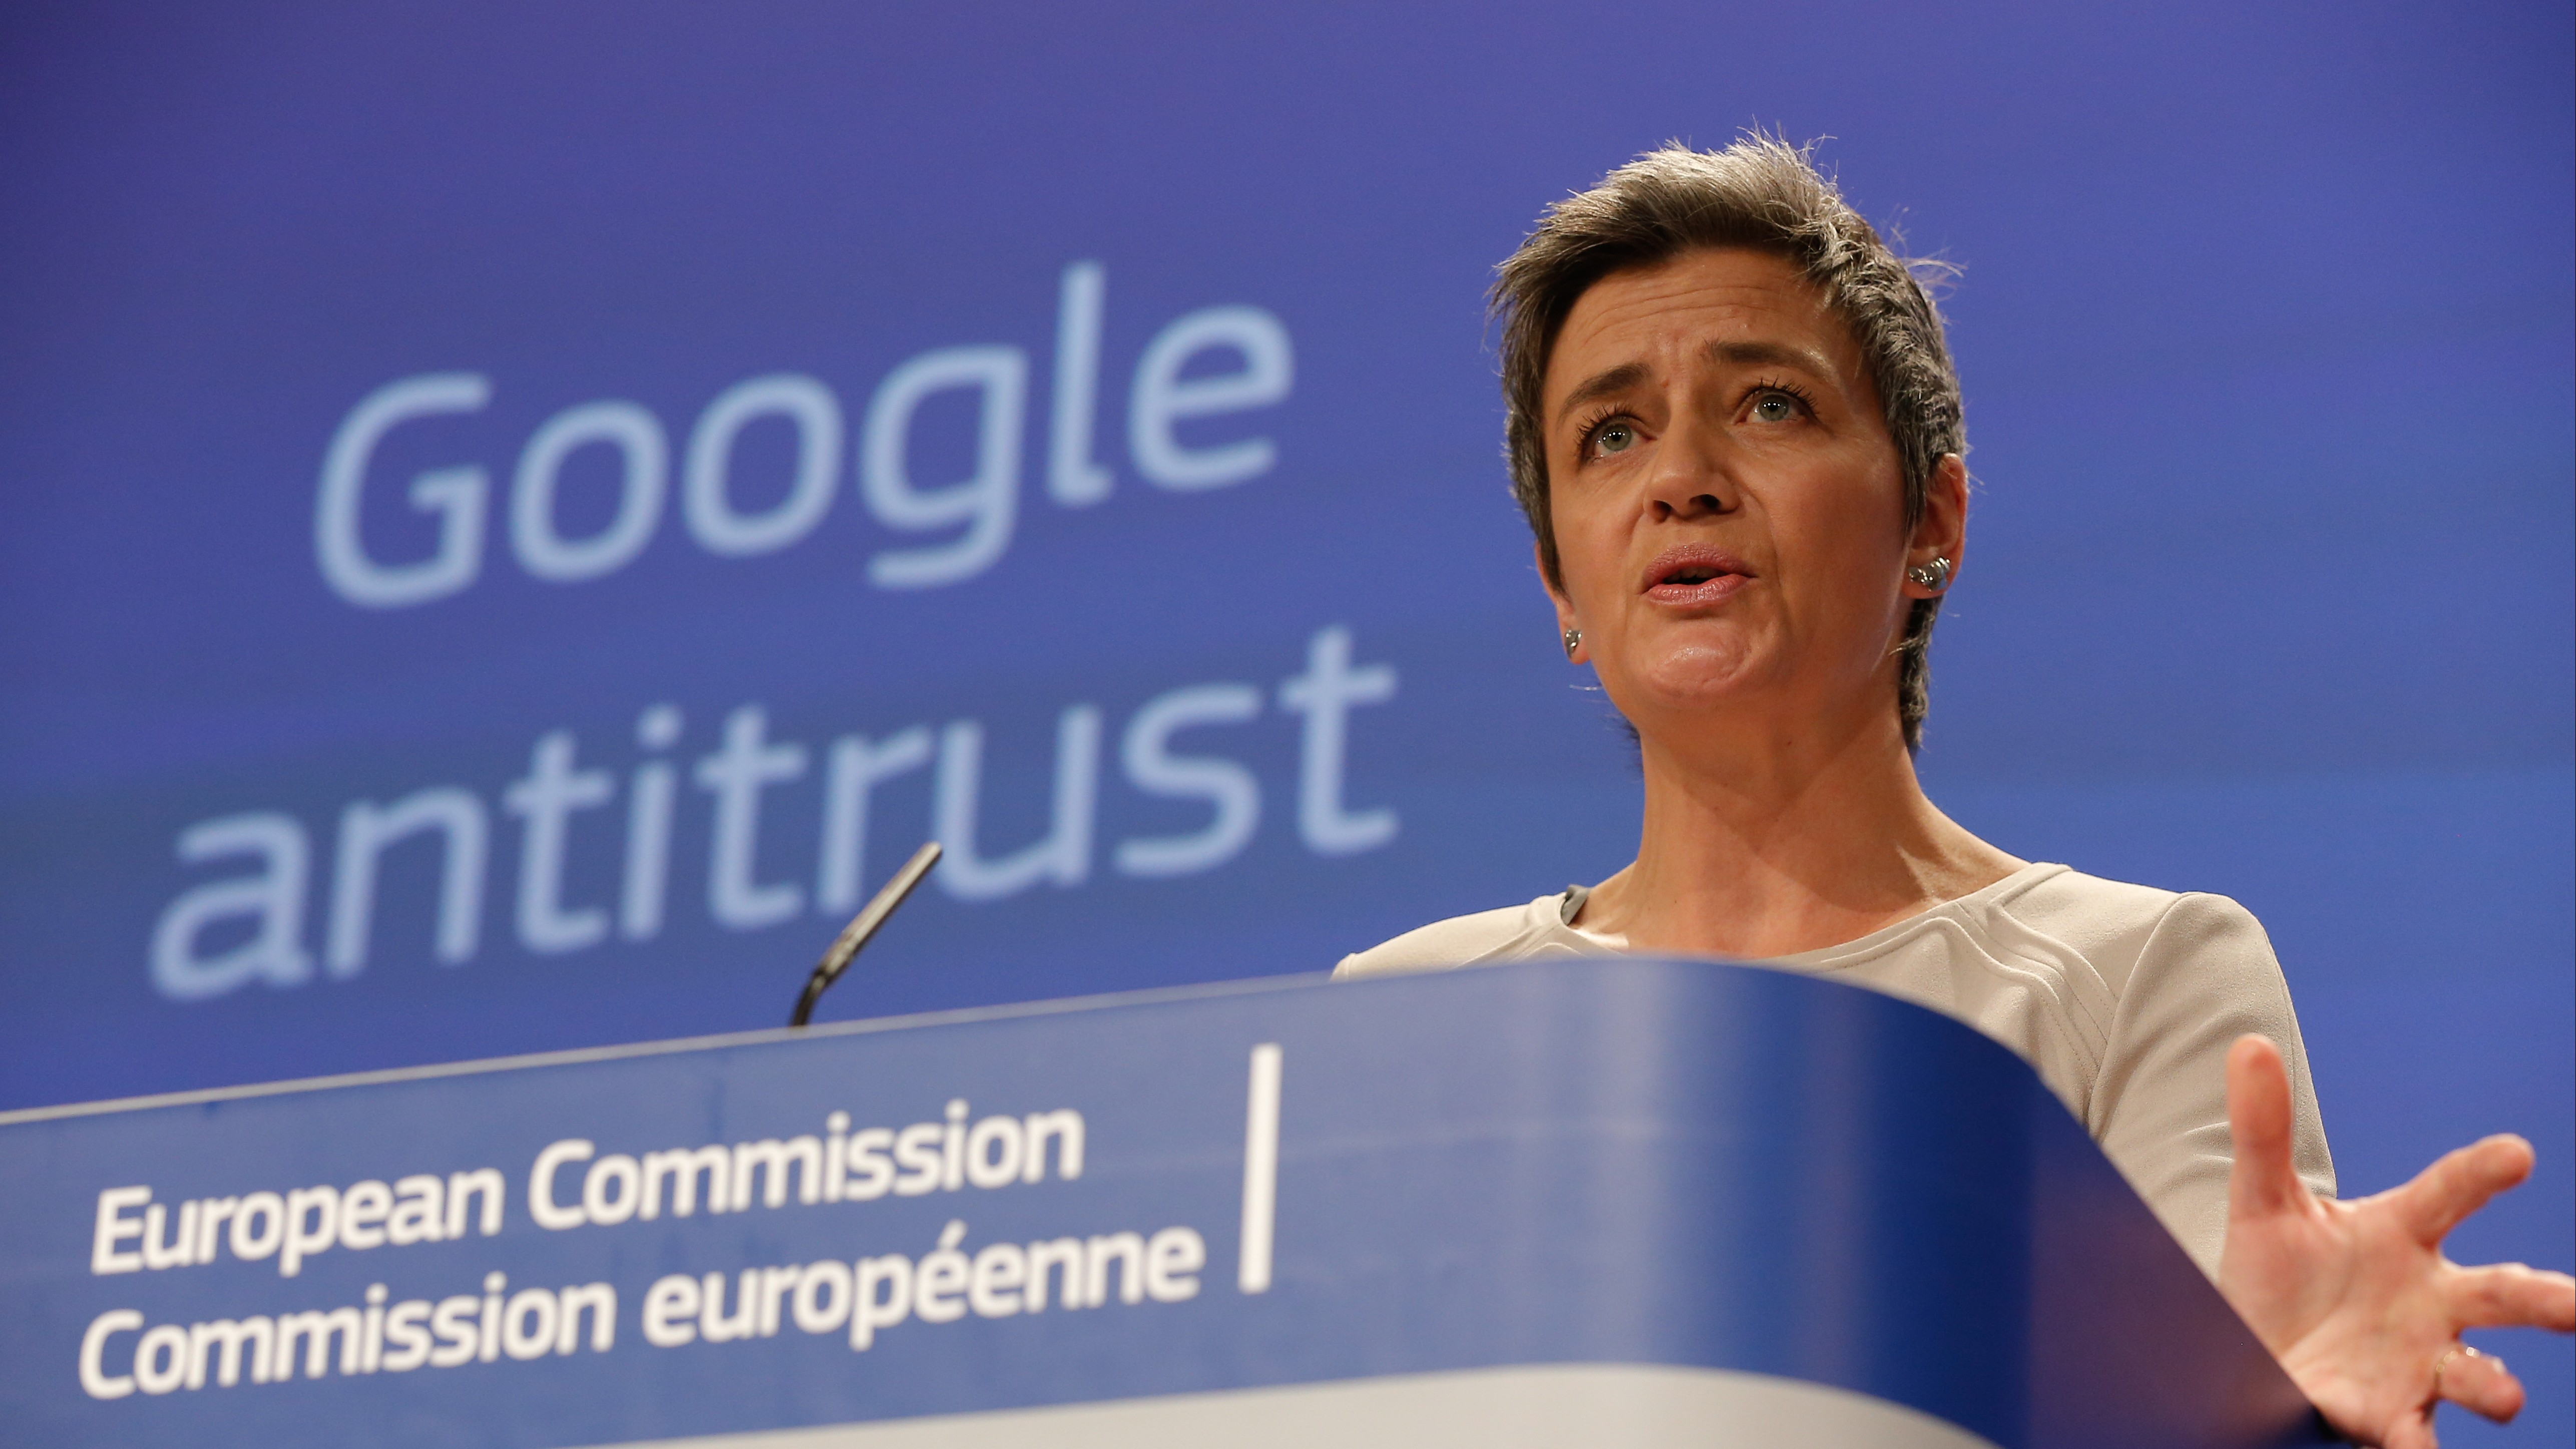 EU Commission news conference on Google